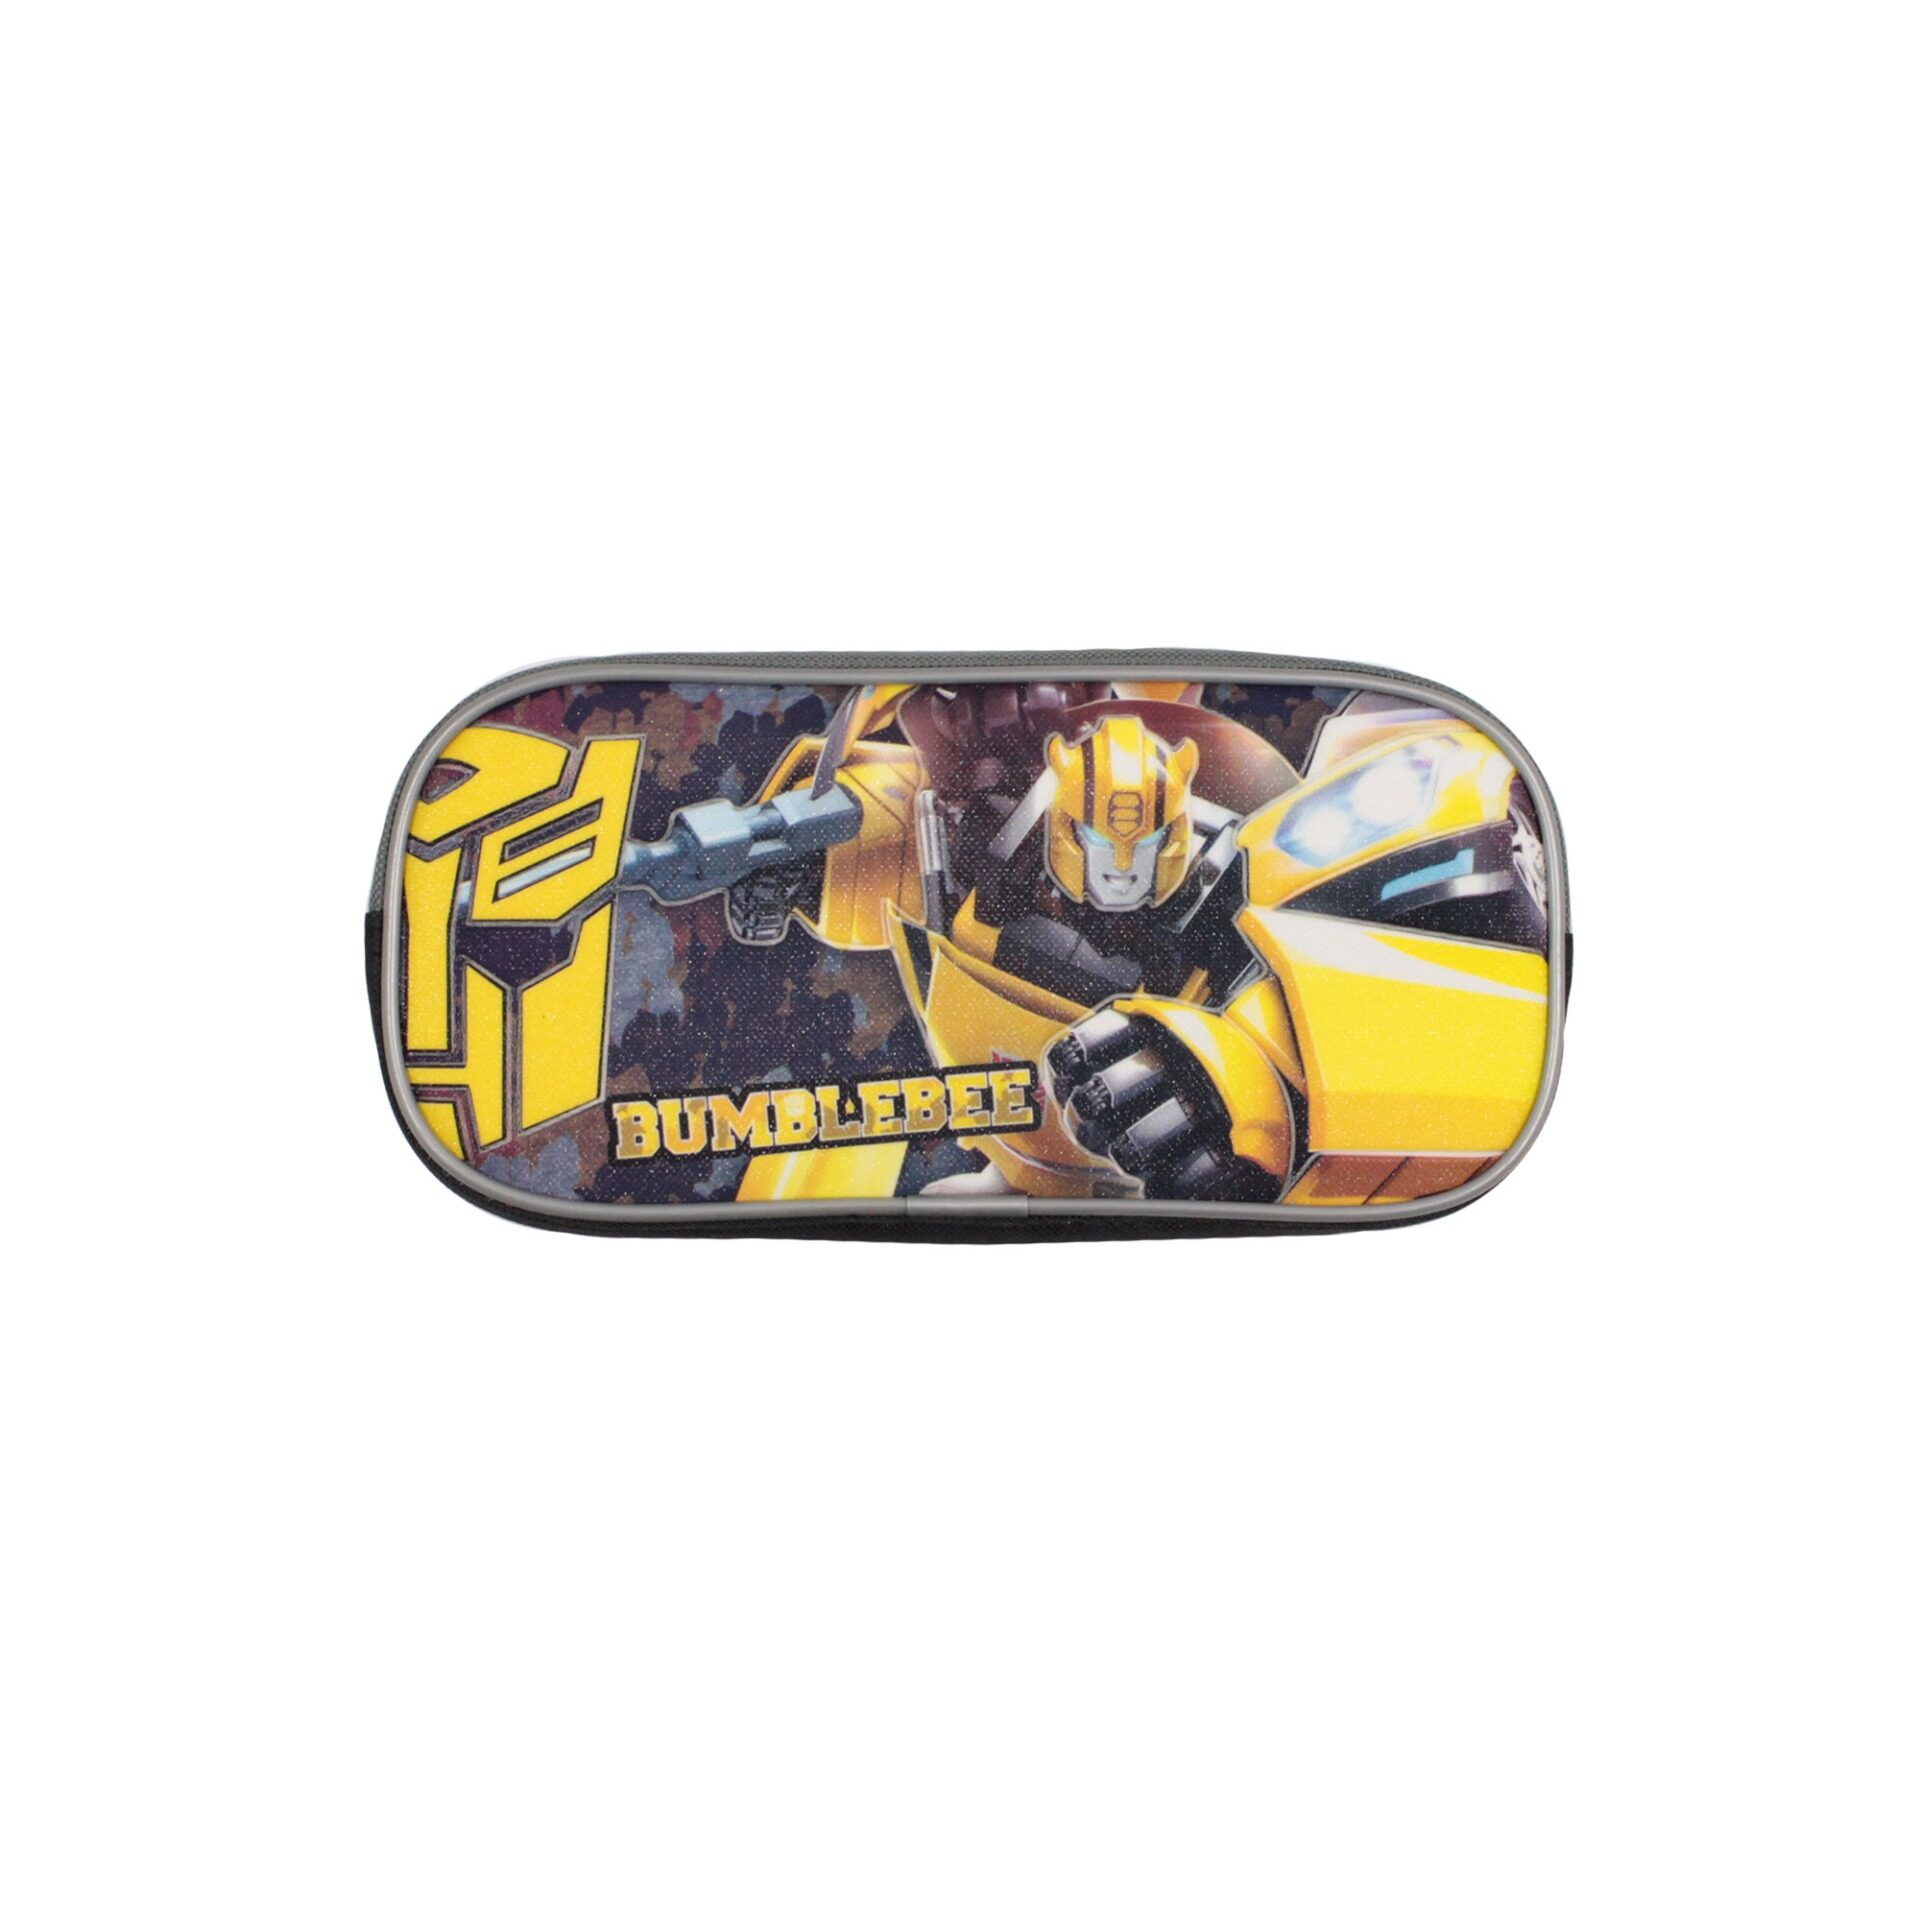 Transformers Bumblebee Children School Stationery Single Zip Pencil Case With Handle